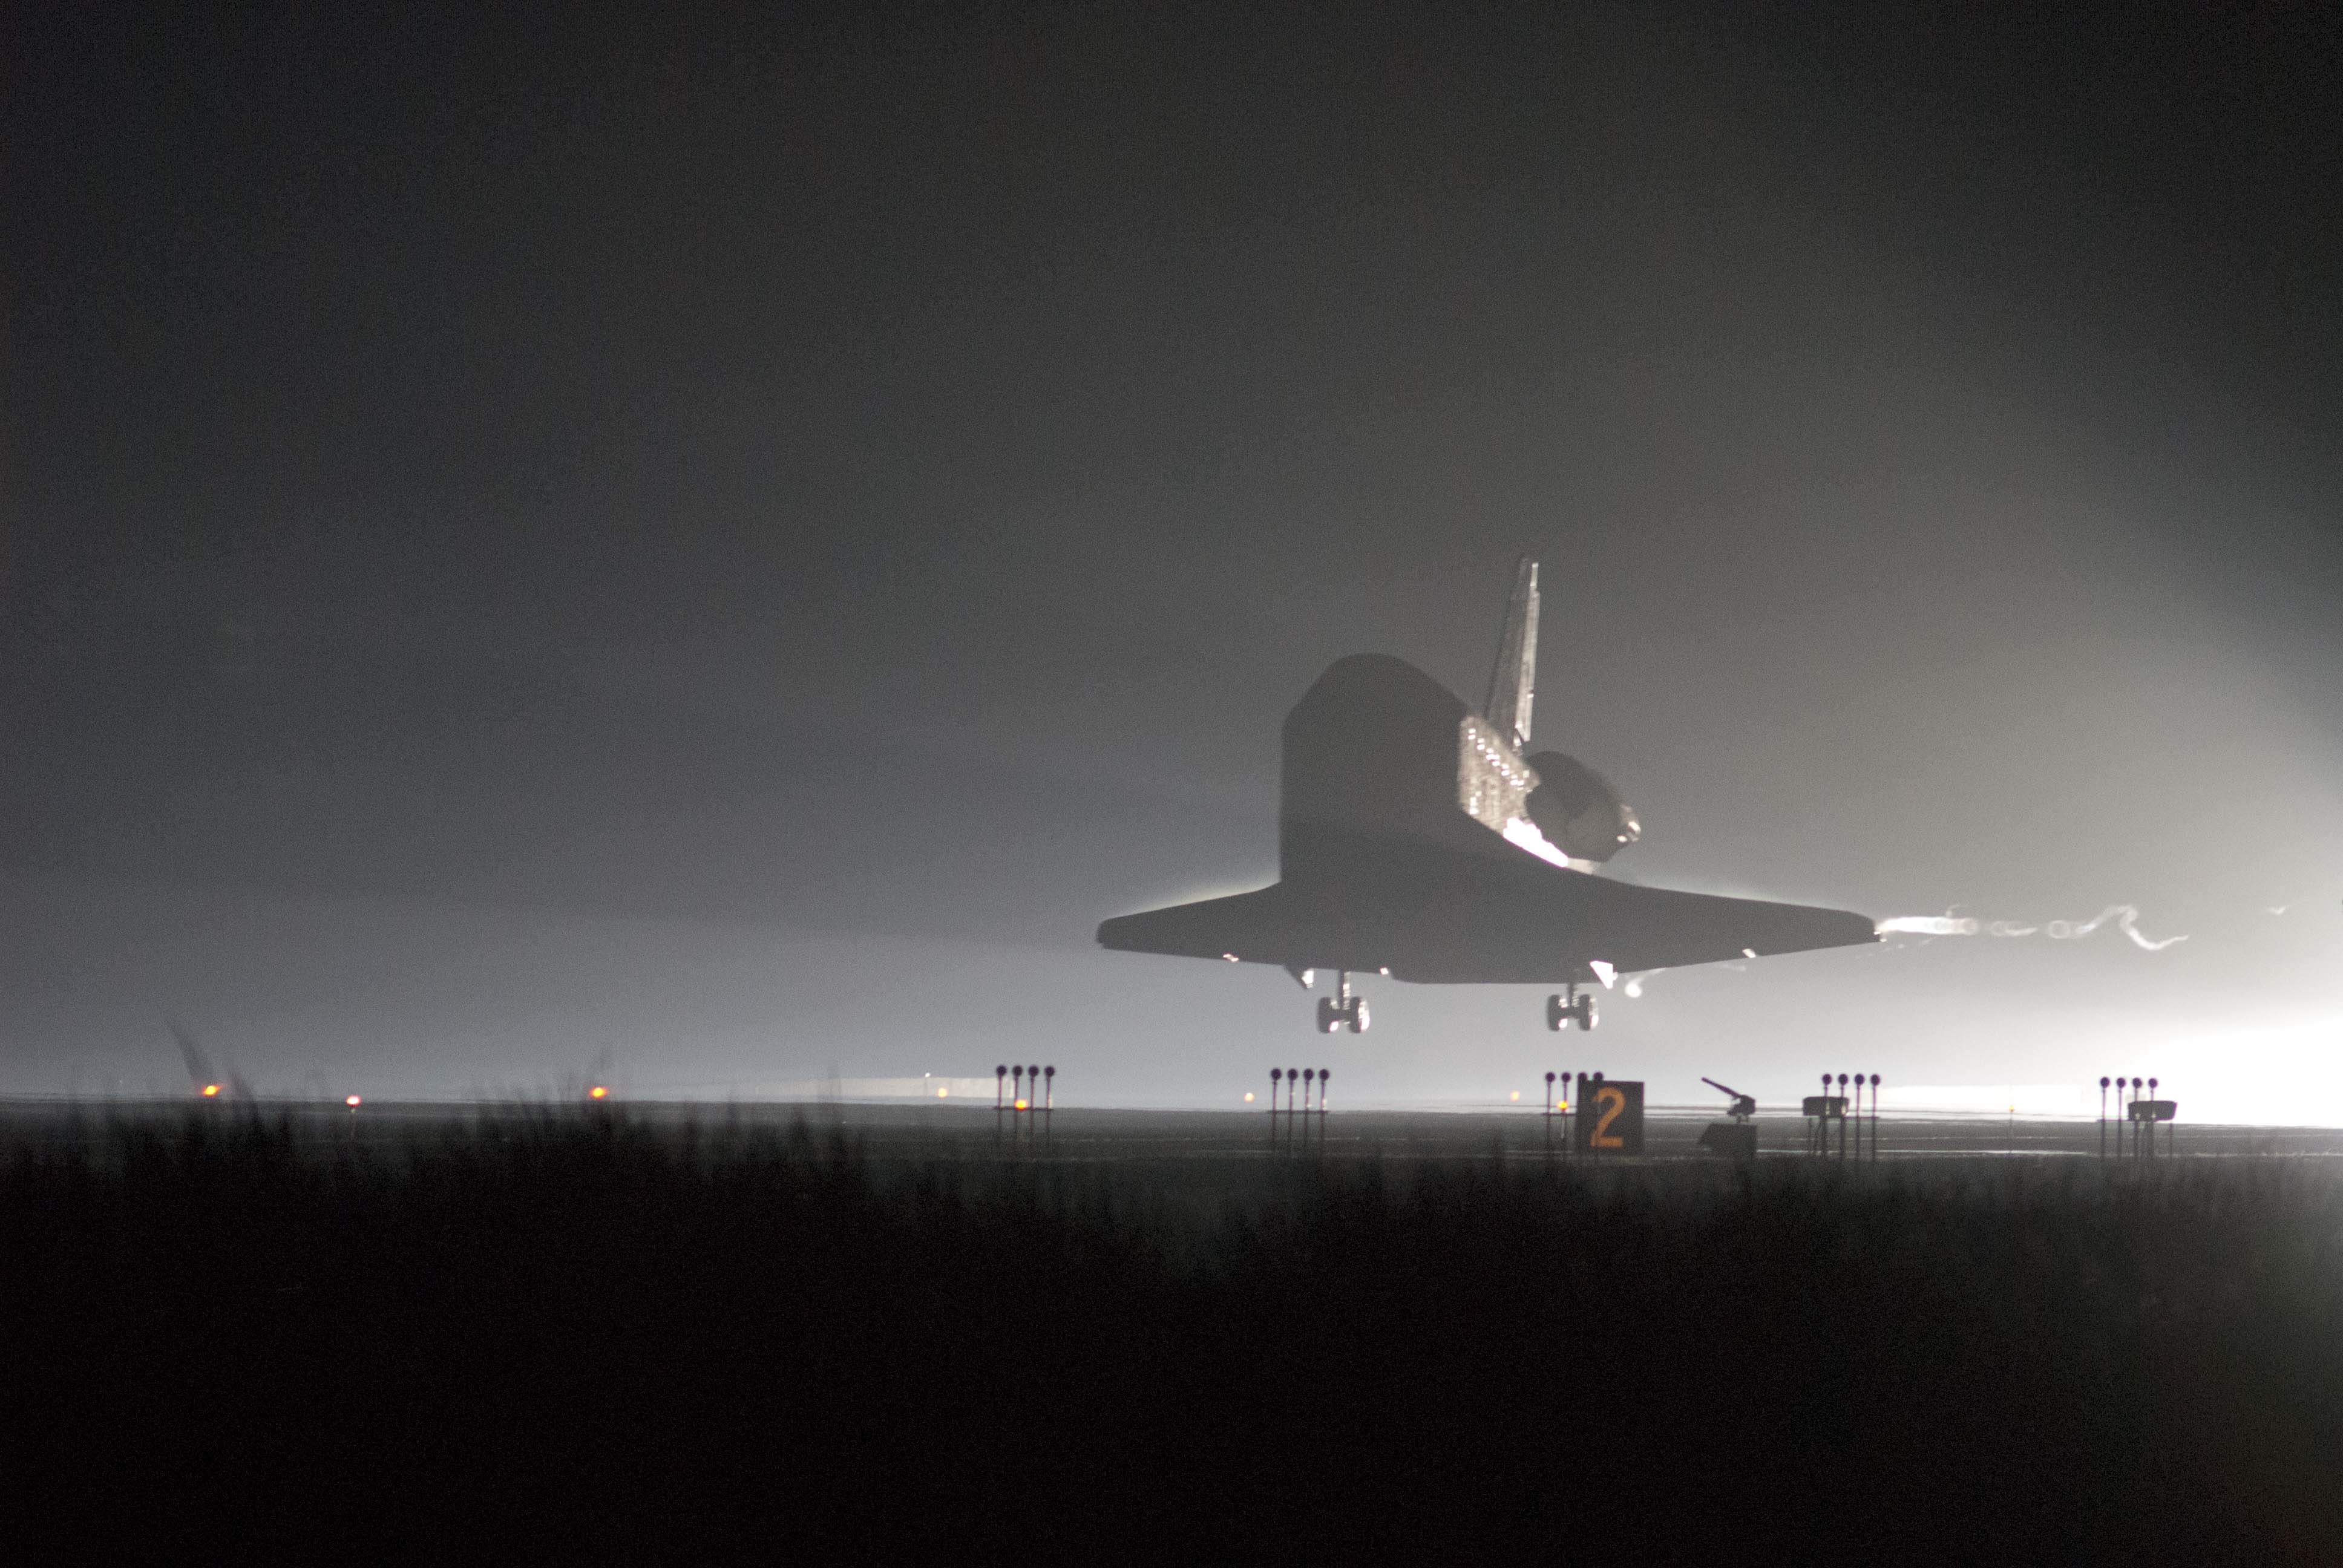 Pushing the Limits: The NASA Space Shuttle (Photos) | The ...